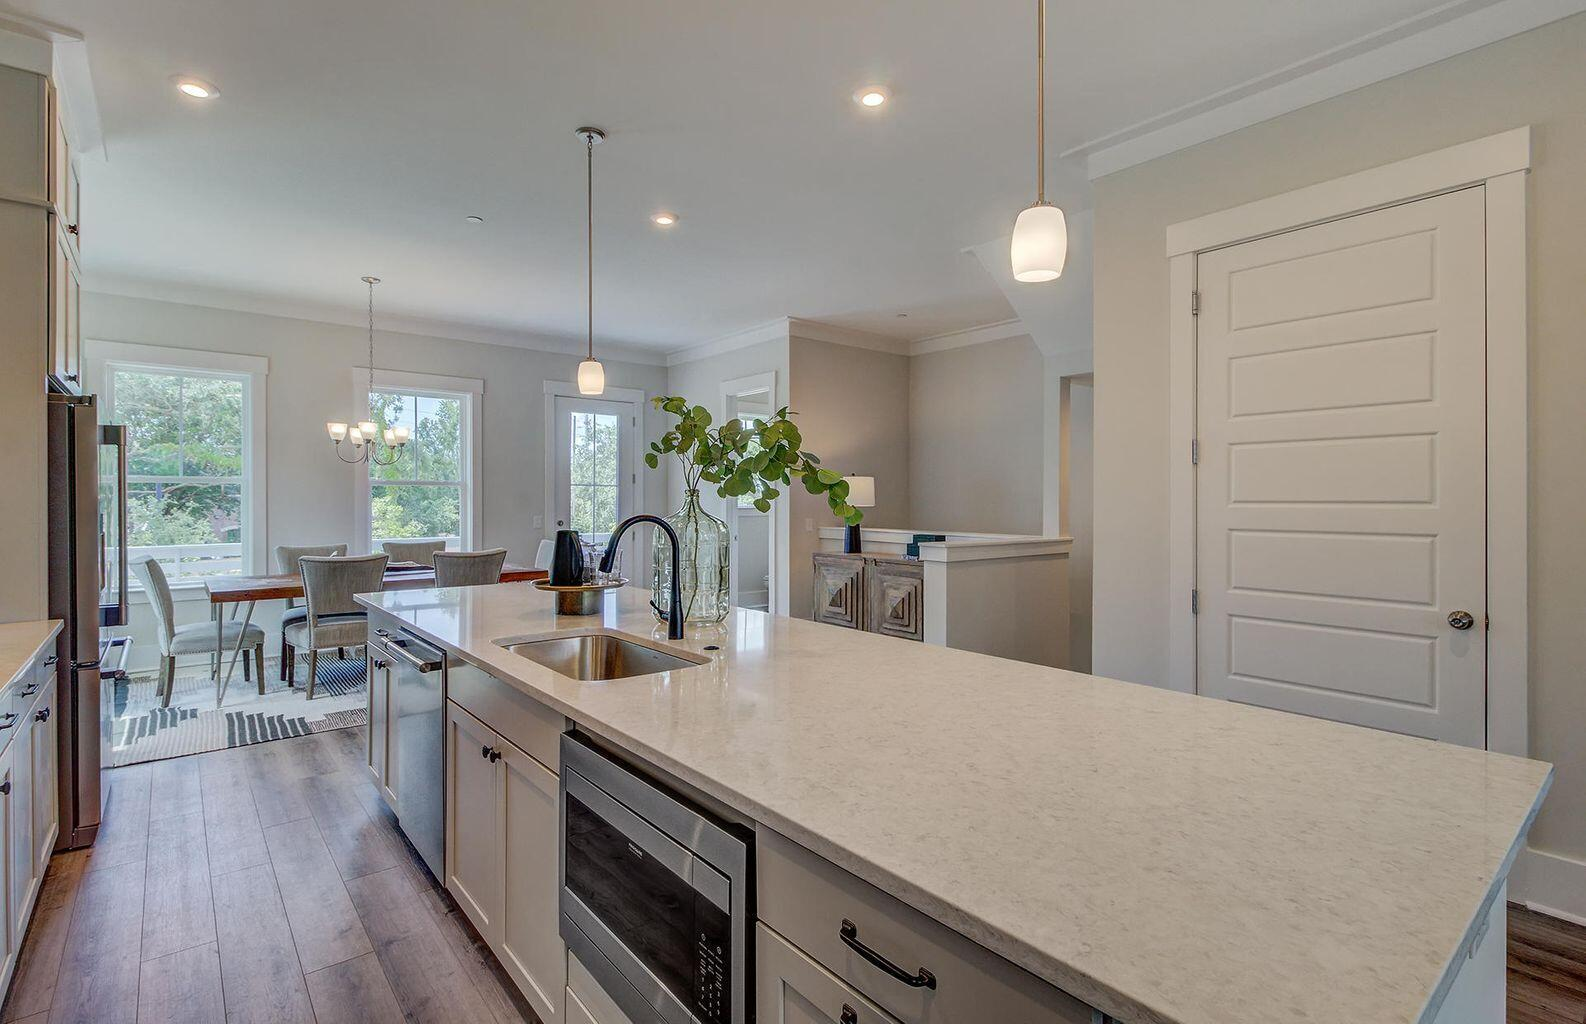 The Cove at Folly Homes For Sale - 2139 Tides End, Charleston, SC - 35